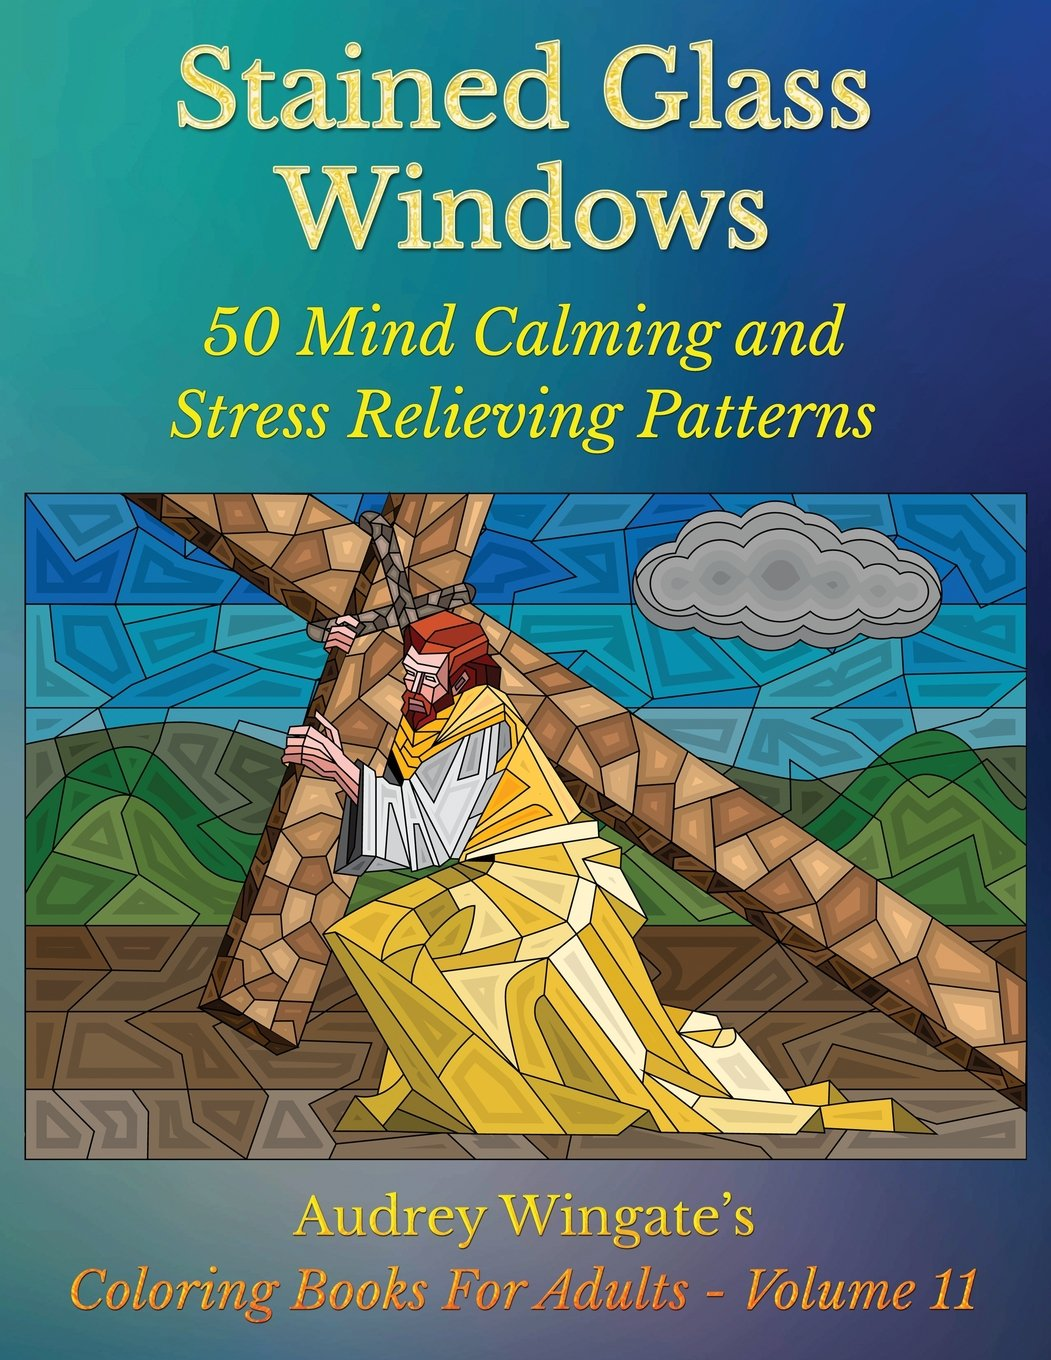 11 Stained Glass Windows 50 Mind Calming And Stress Relieving Patterns Coloring Books For Adults Volume Audrey Wingate WMC Publications